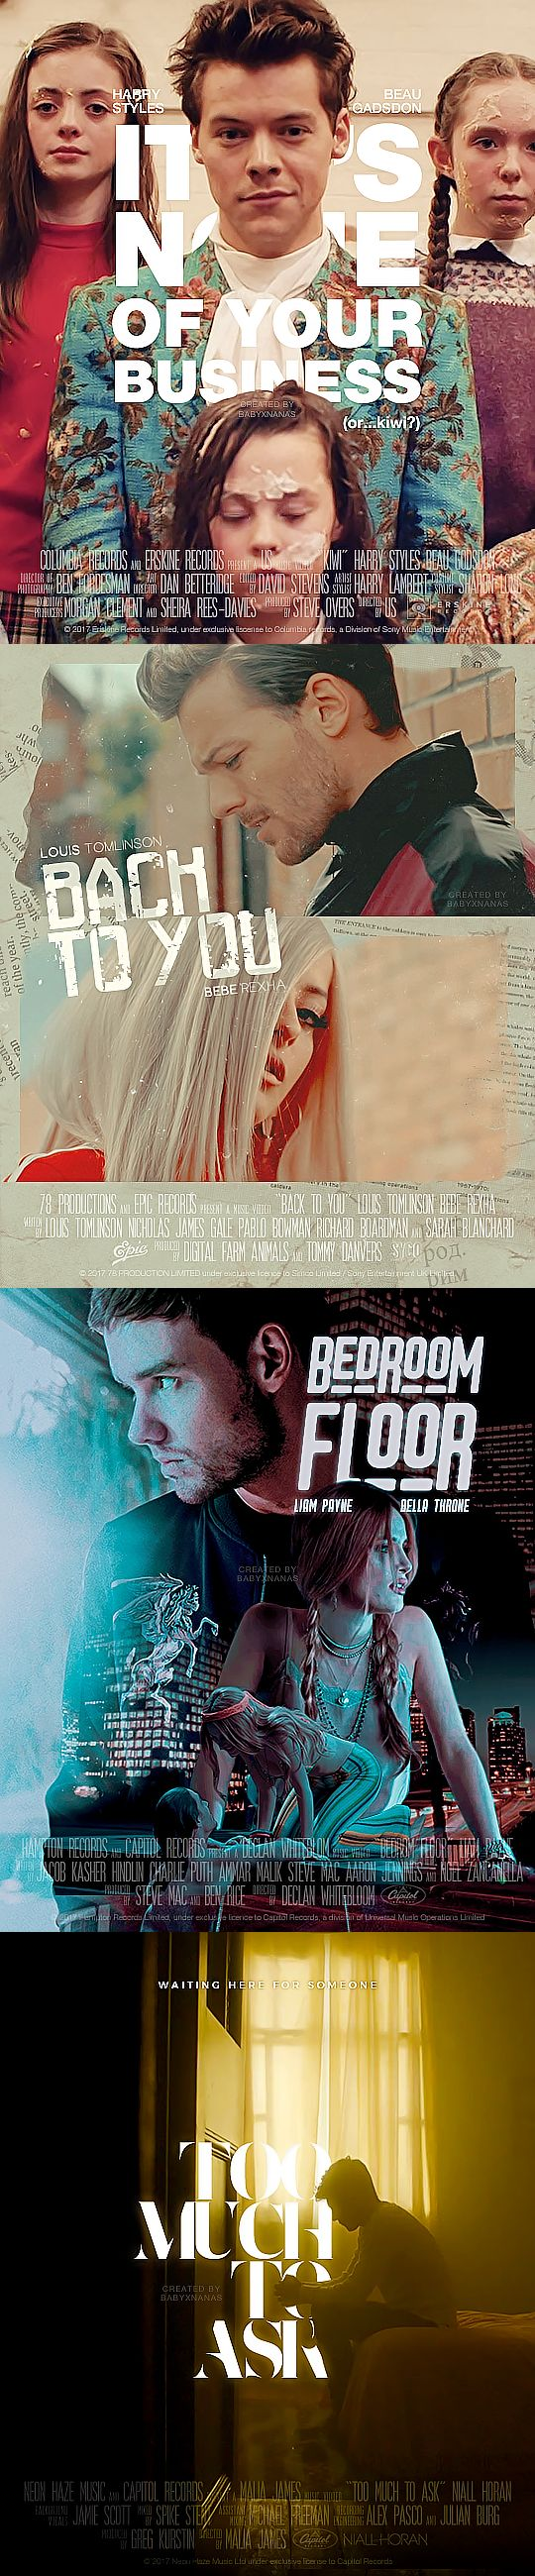 OT4 | Music Video Posters | emrosefeld |